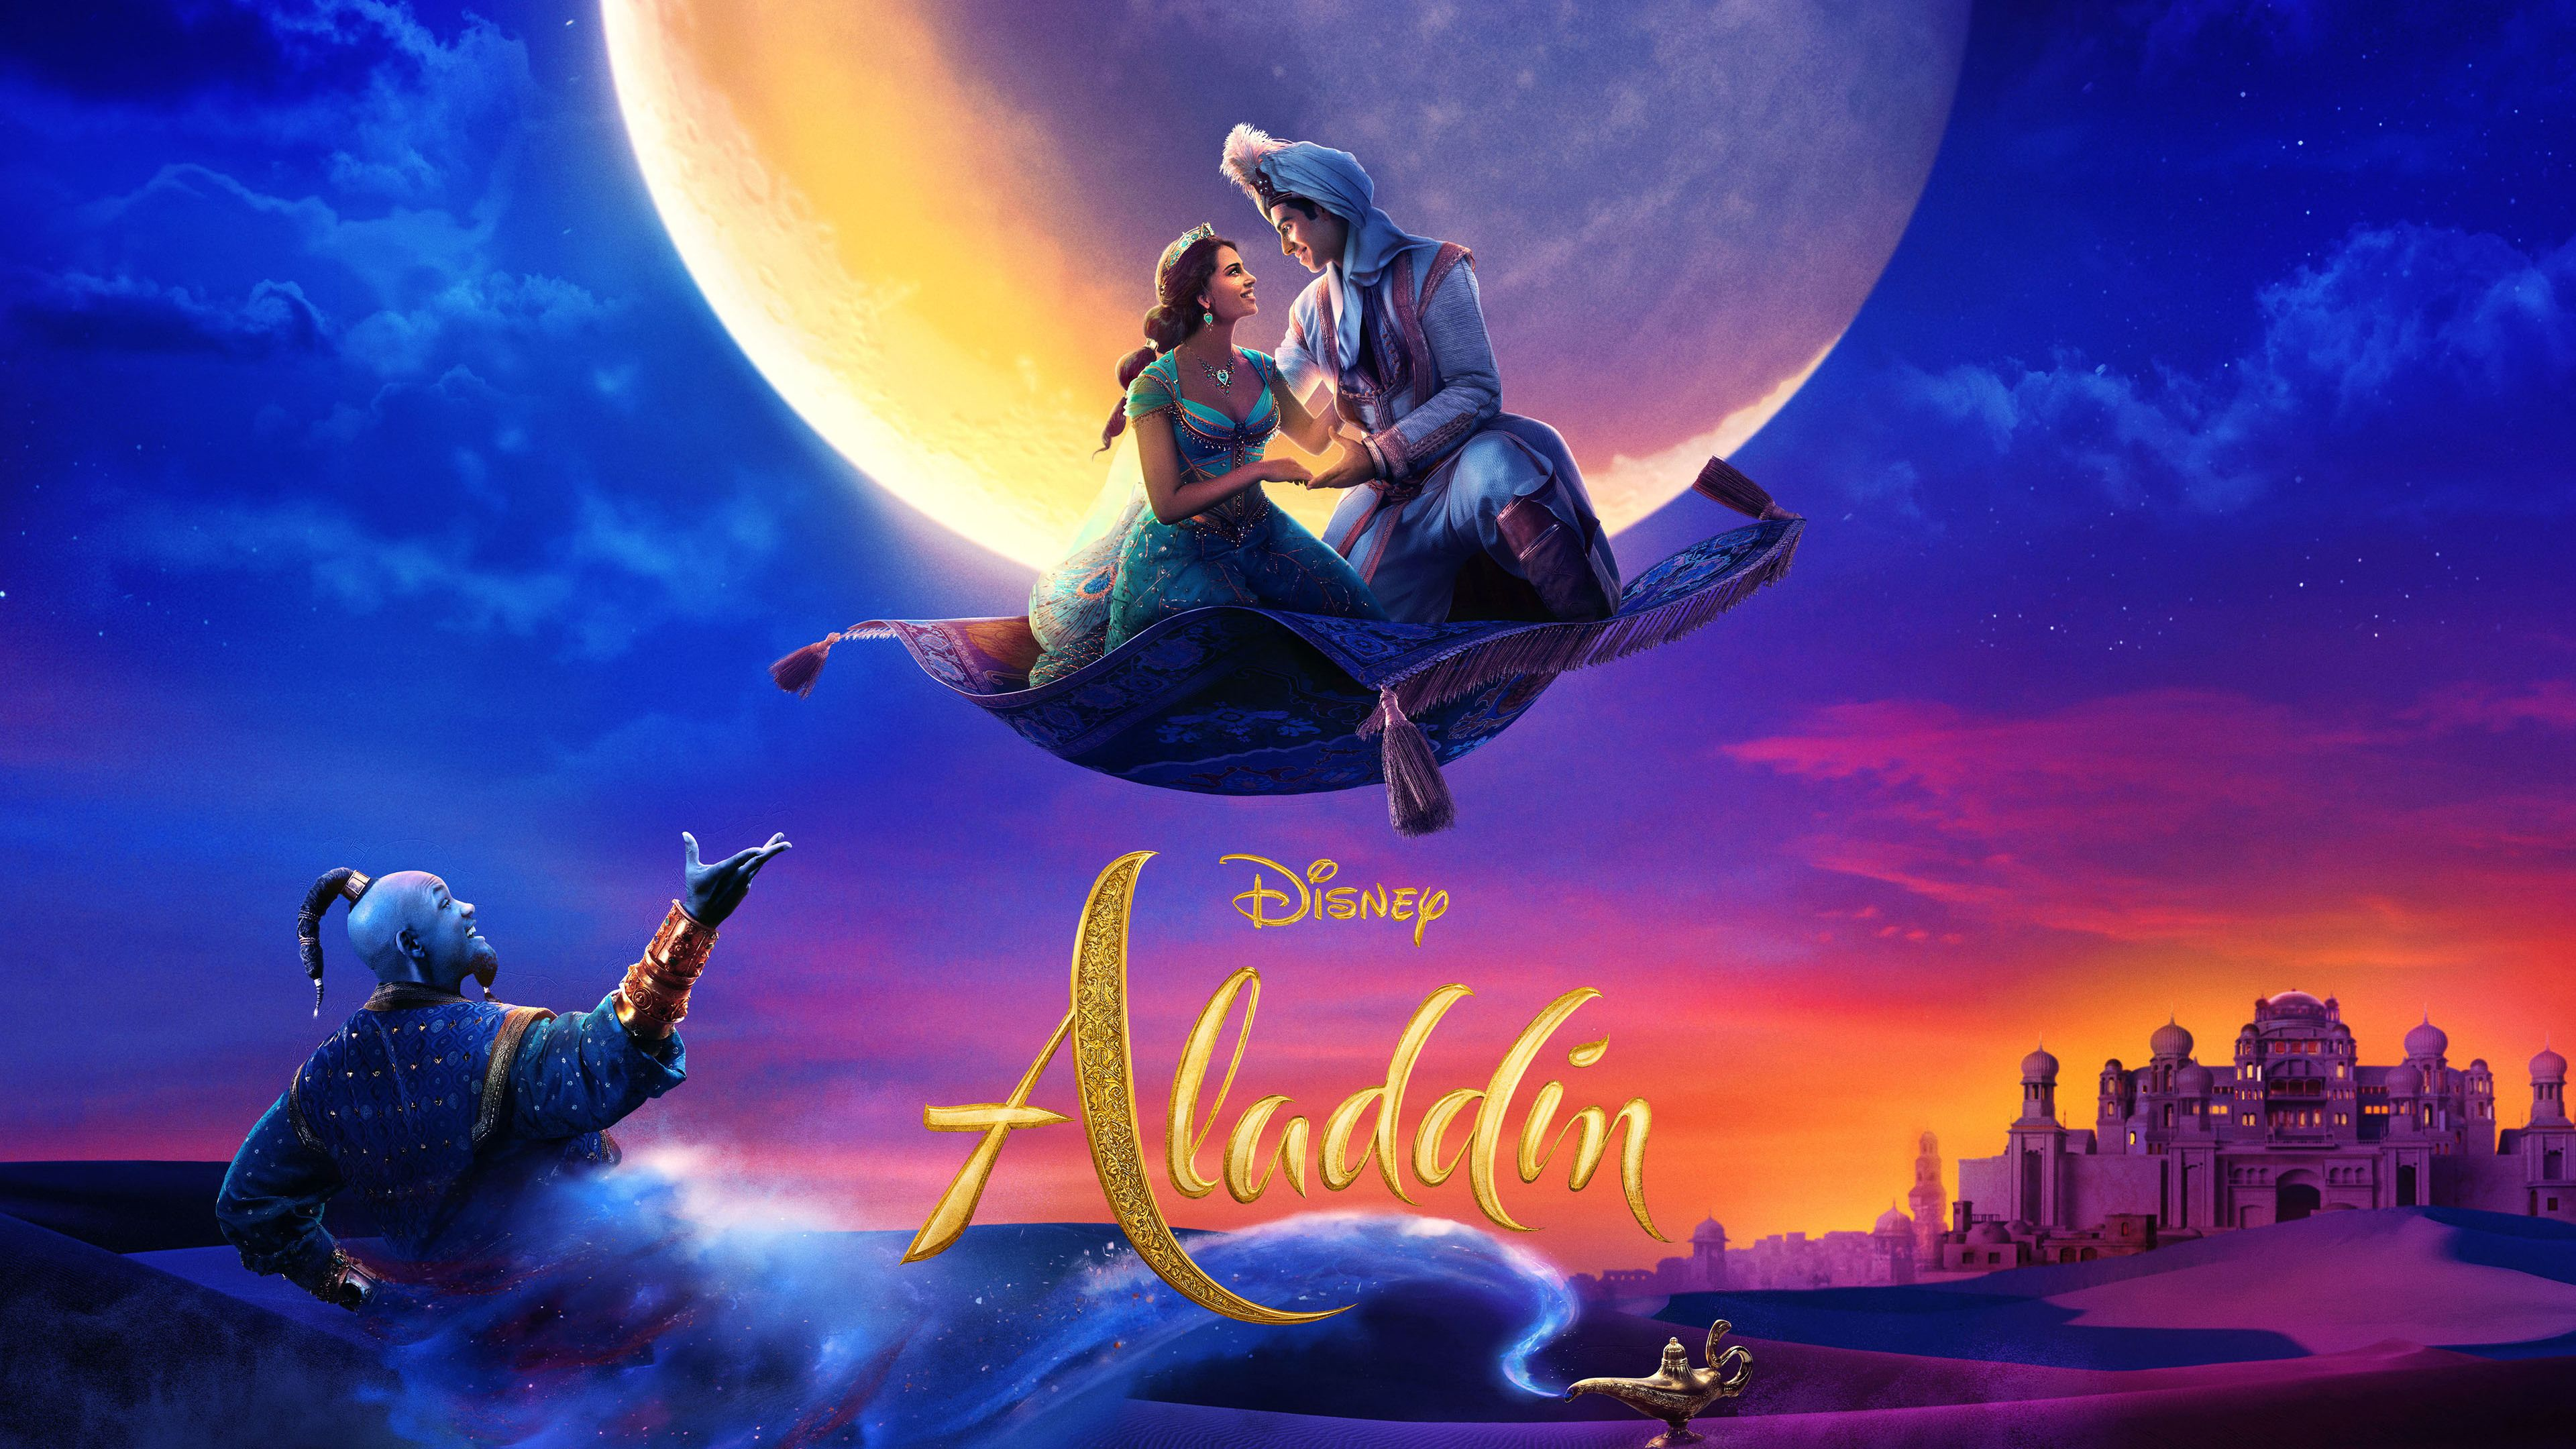 Aladdin 2019 Movie 4k Movies Wallpapers Hd Wallpapers